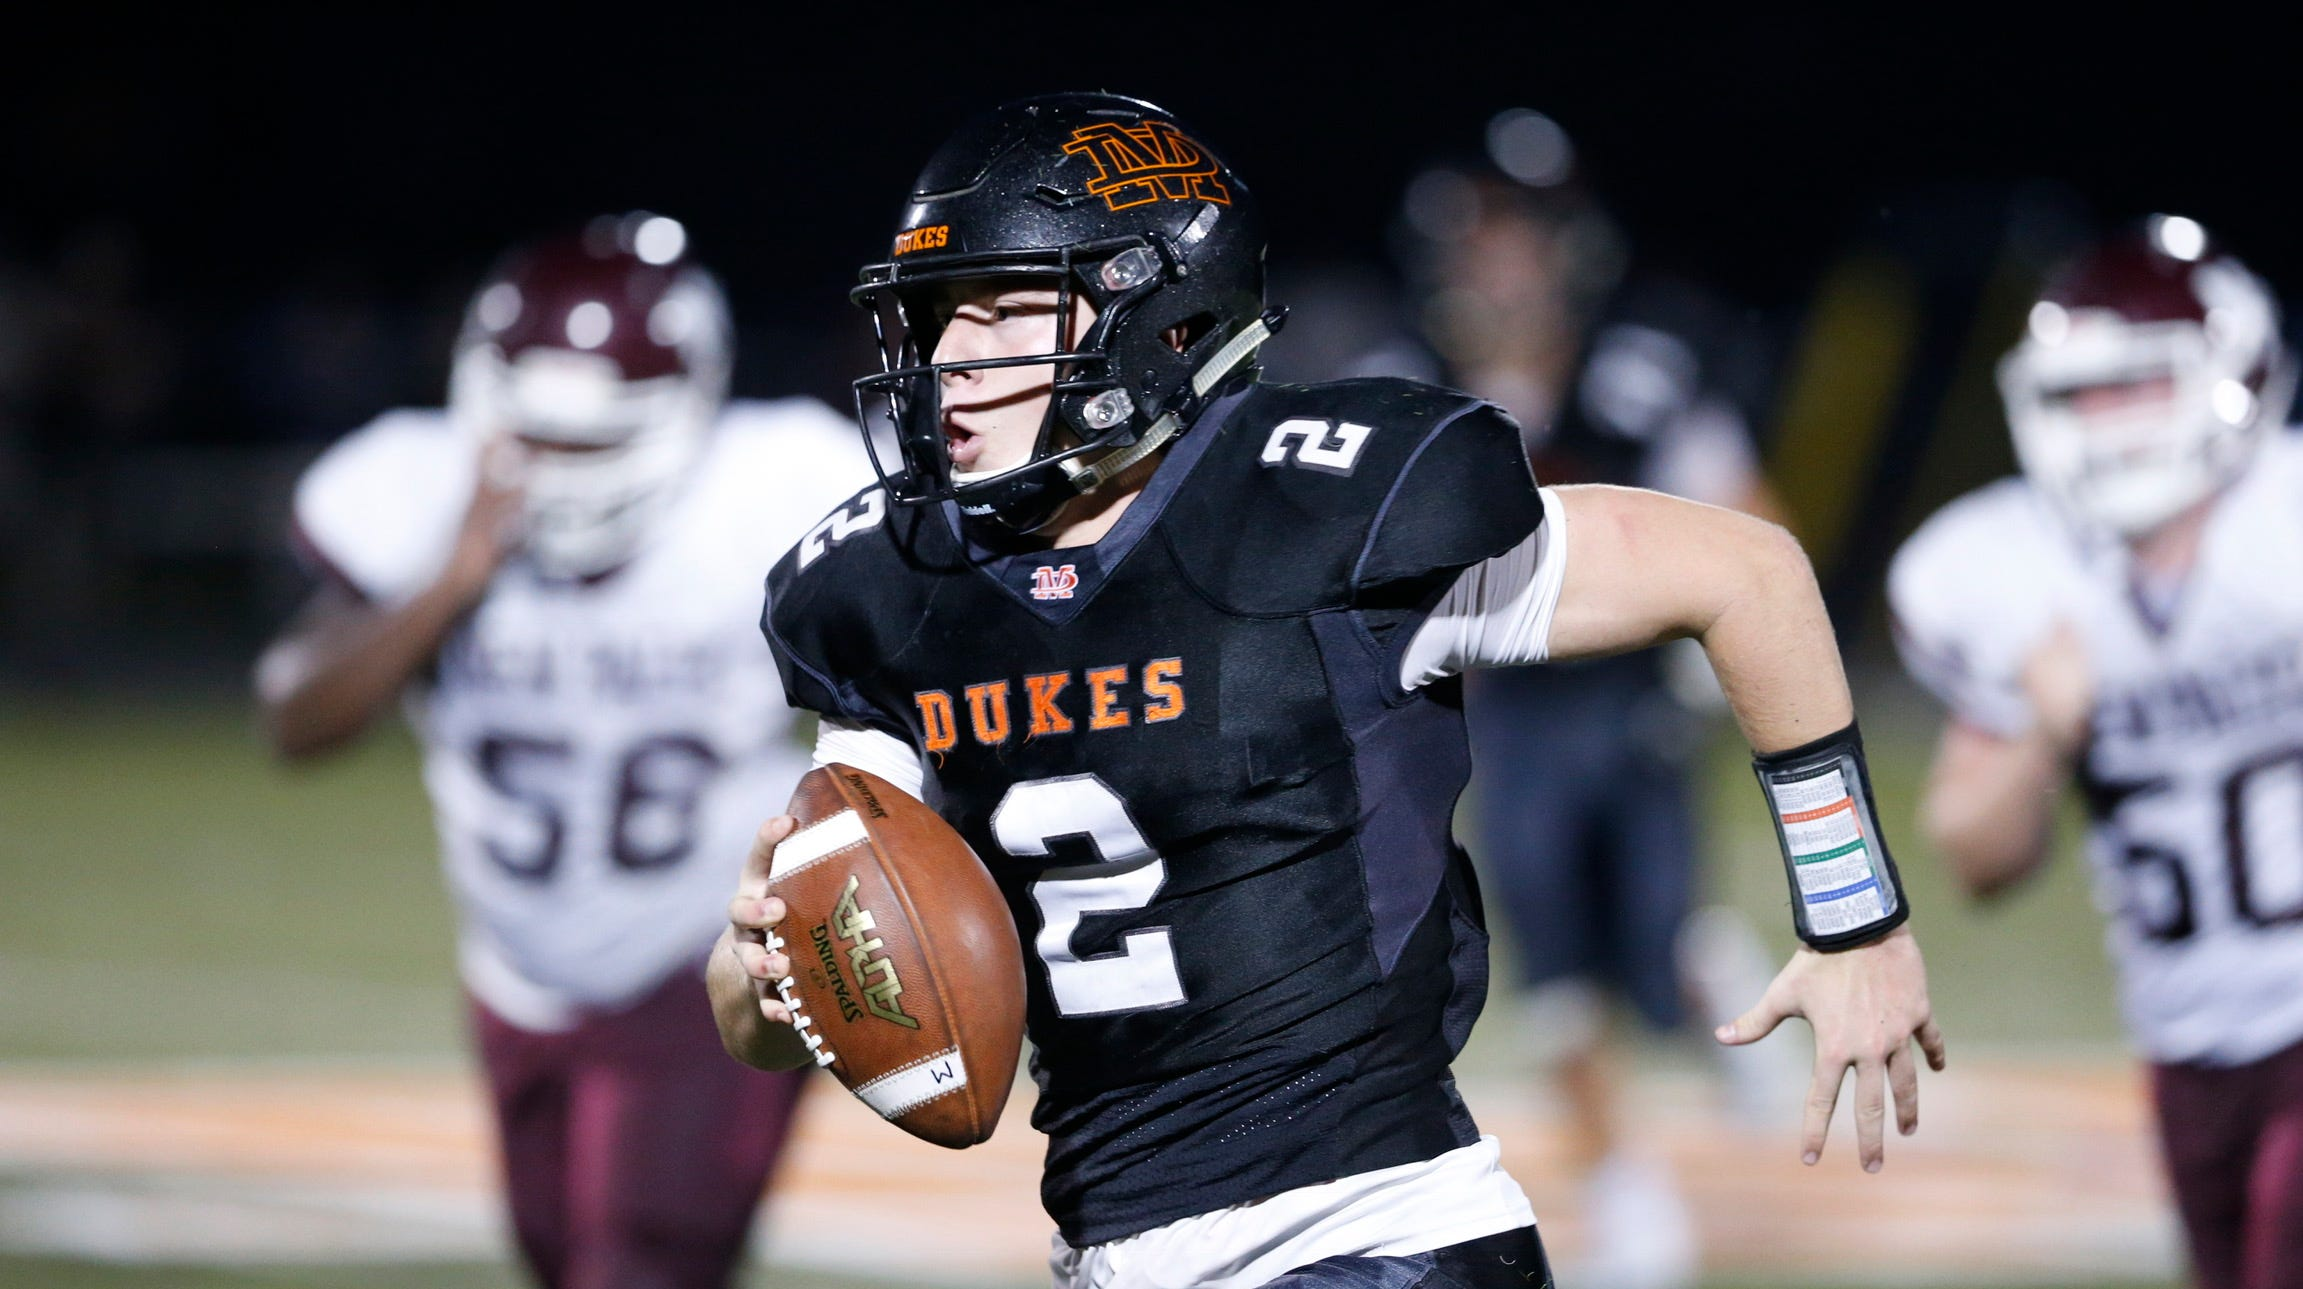 Marlboro's Sam Mongelli carries the ball in the second quarter during Friday's game versus New Paltz on Aug 31, 2018.